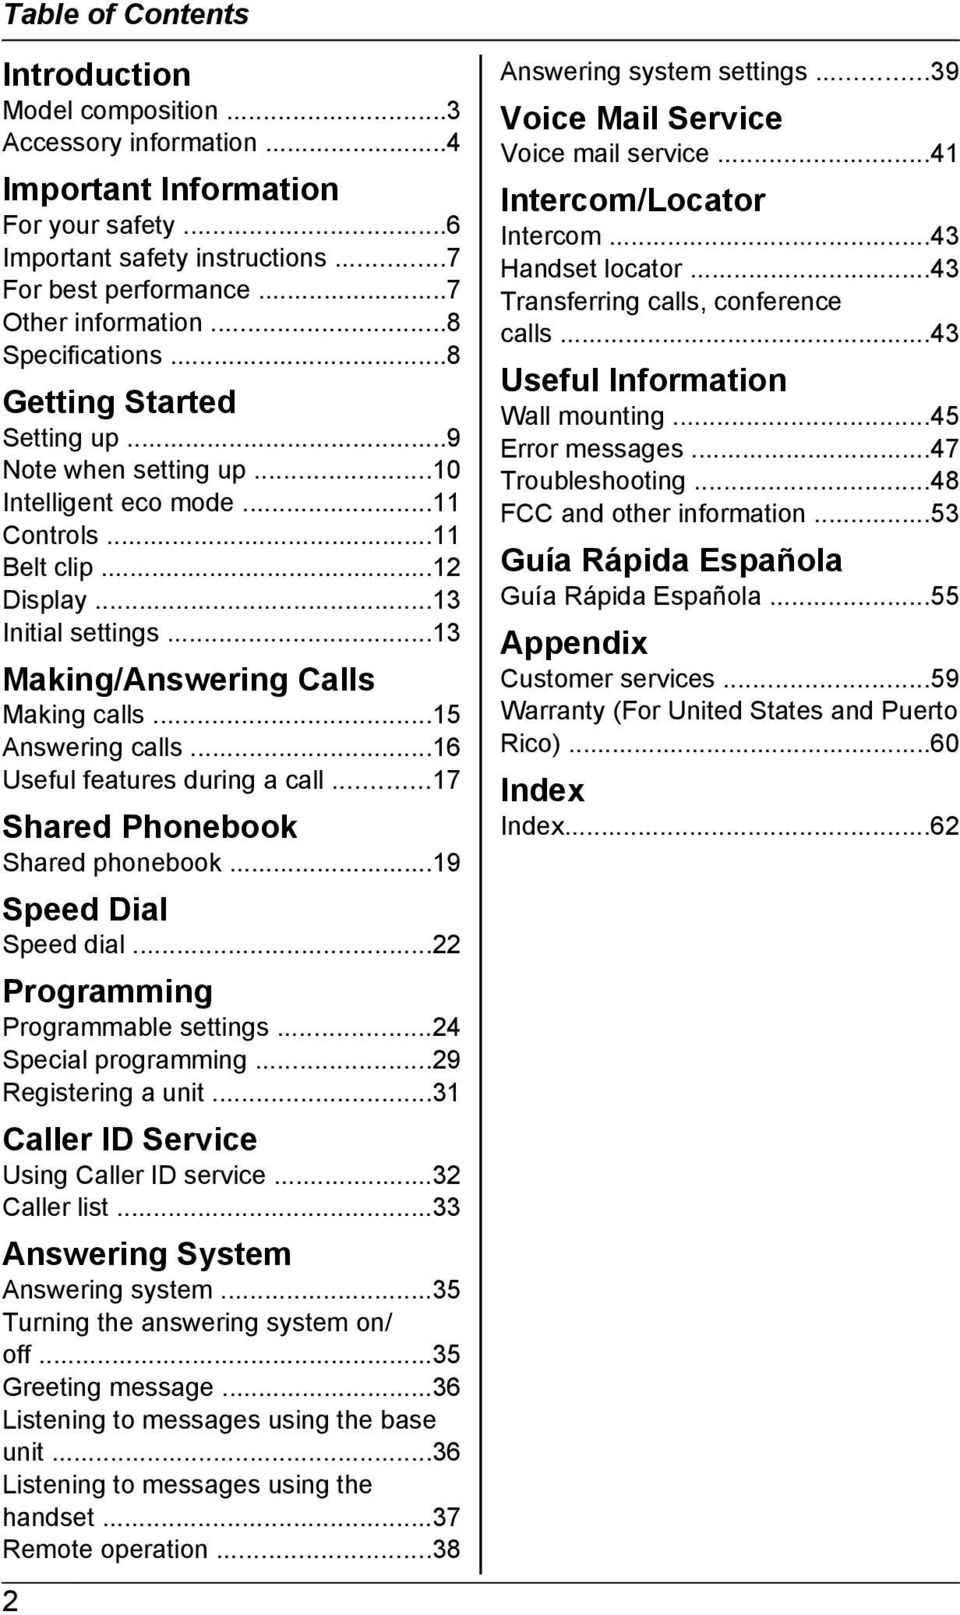 ..13 Making/Answering Calls Making calls...15 Answering calls...16 Useful features during a call...17 Shared Phonebook Shared phonebook...19 Speed Dial Speed dial...22 Programming Programmable settings.